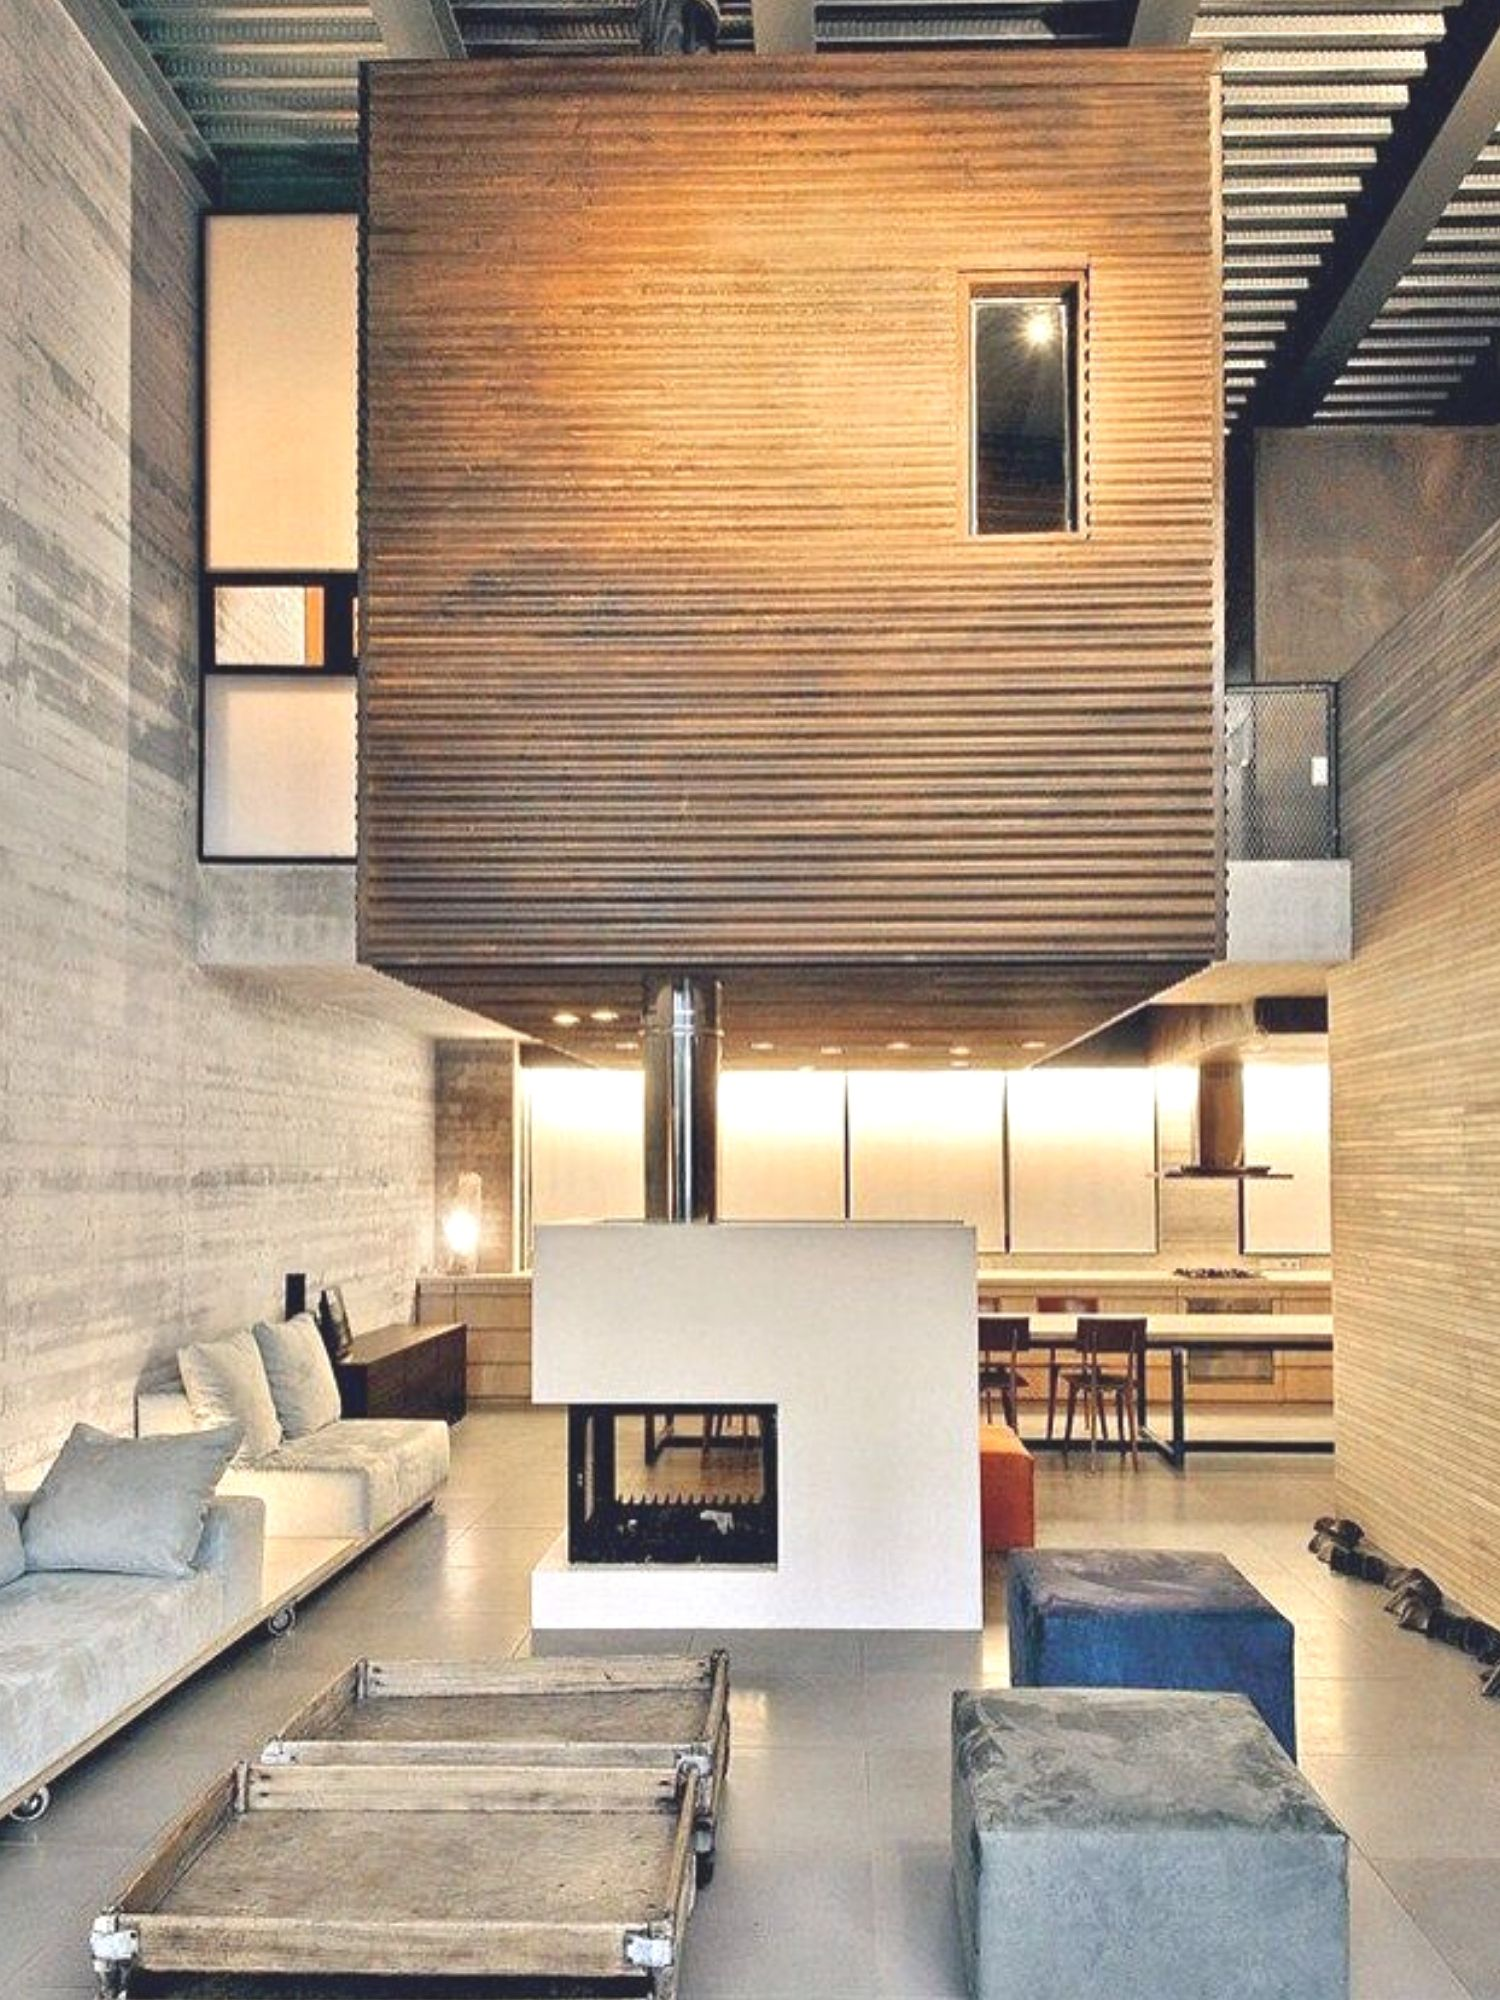 Top 7 Modern Interior Design Concepts With Images Interior Architecture Design Interior Architecture Architecture House